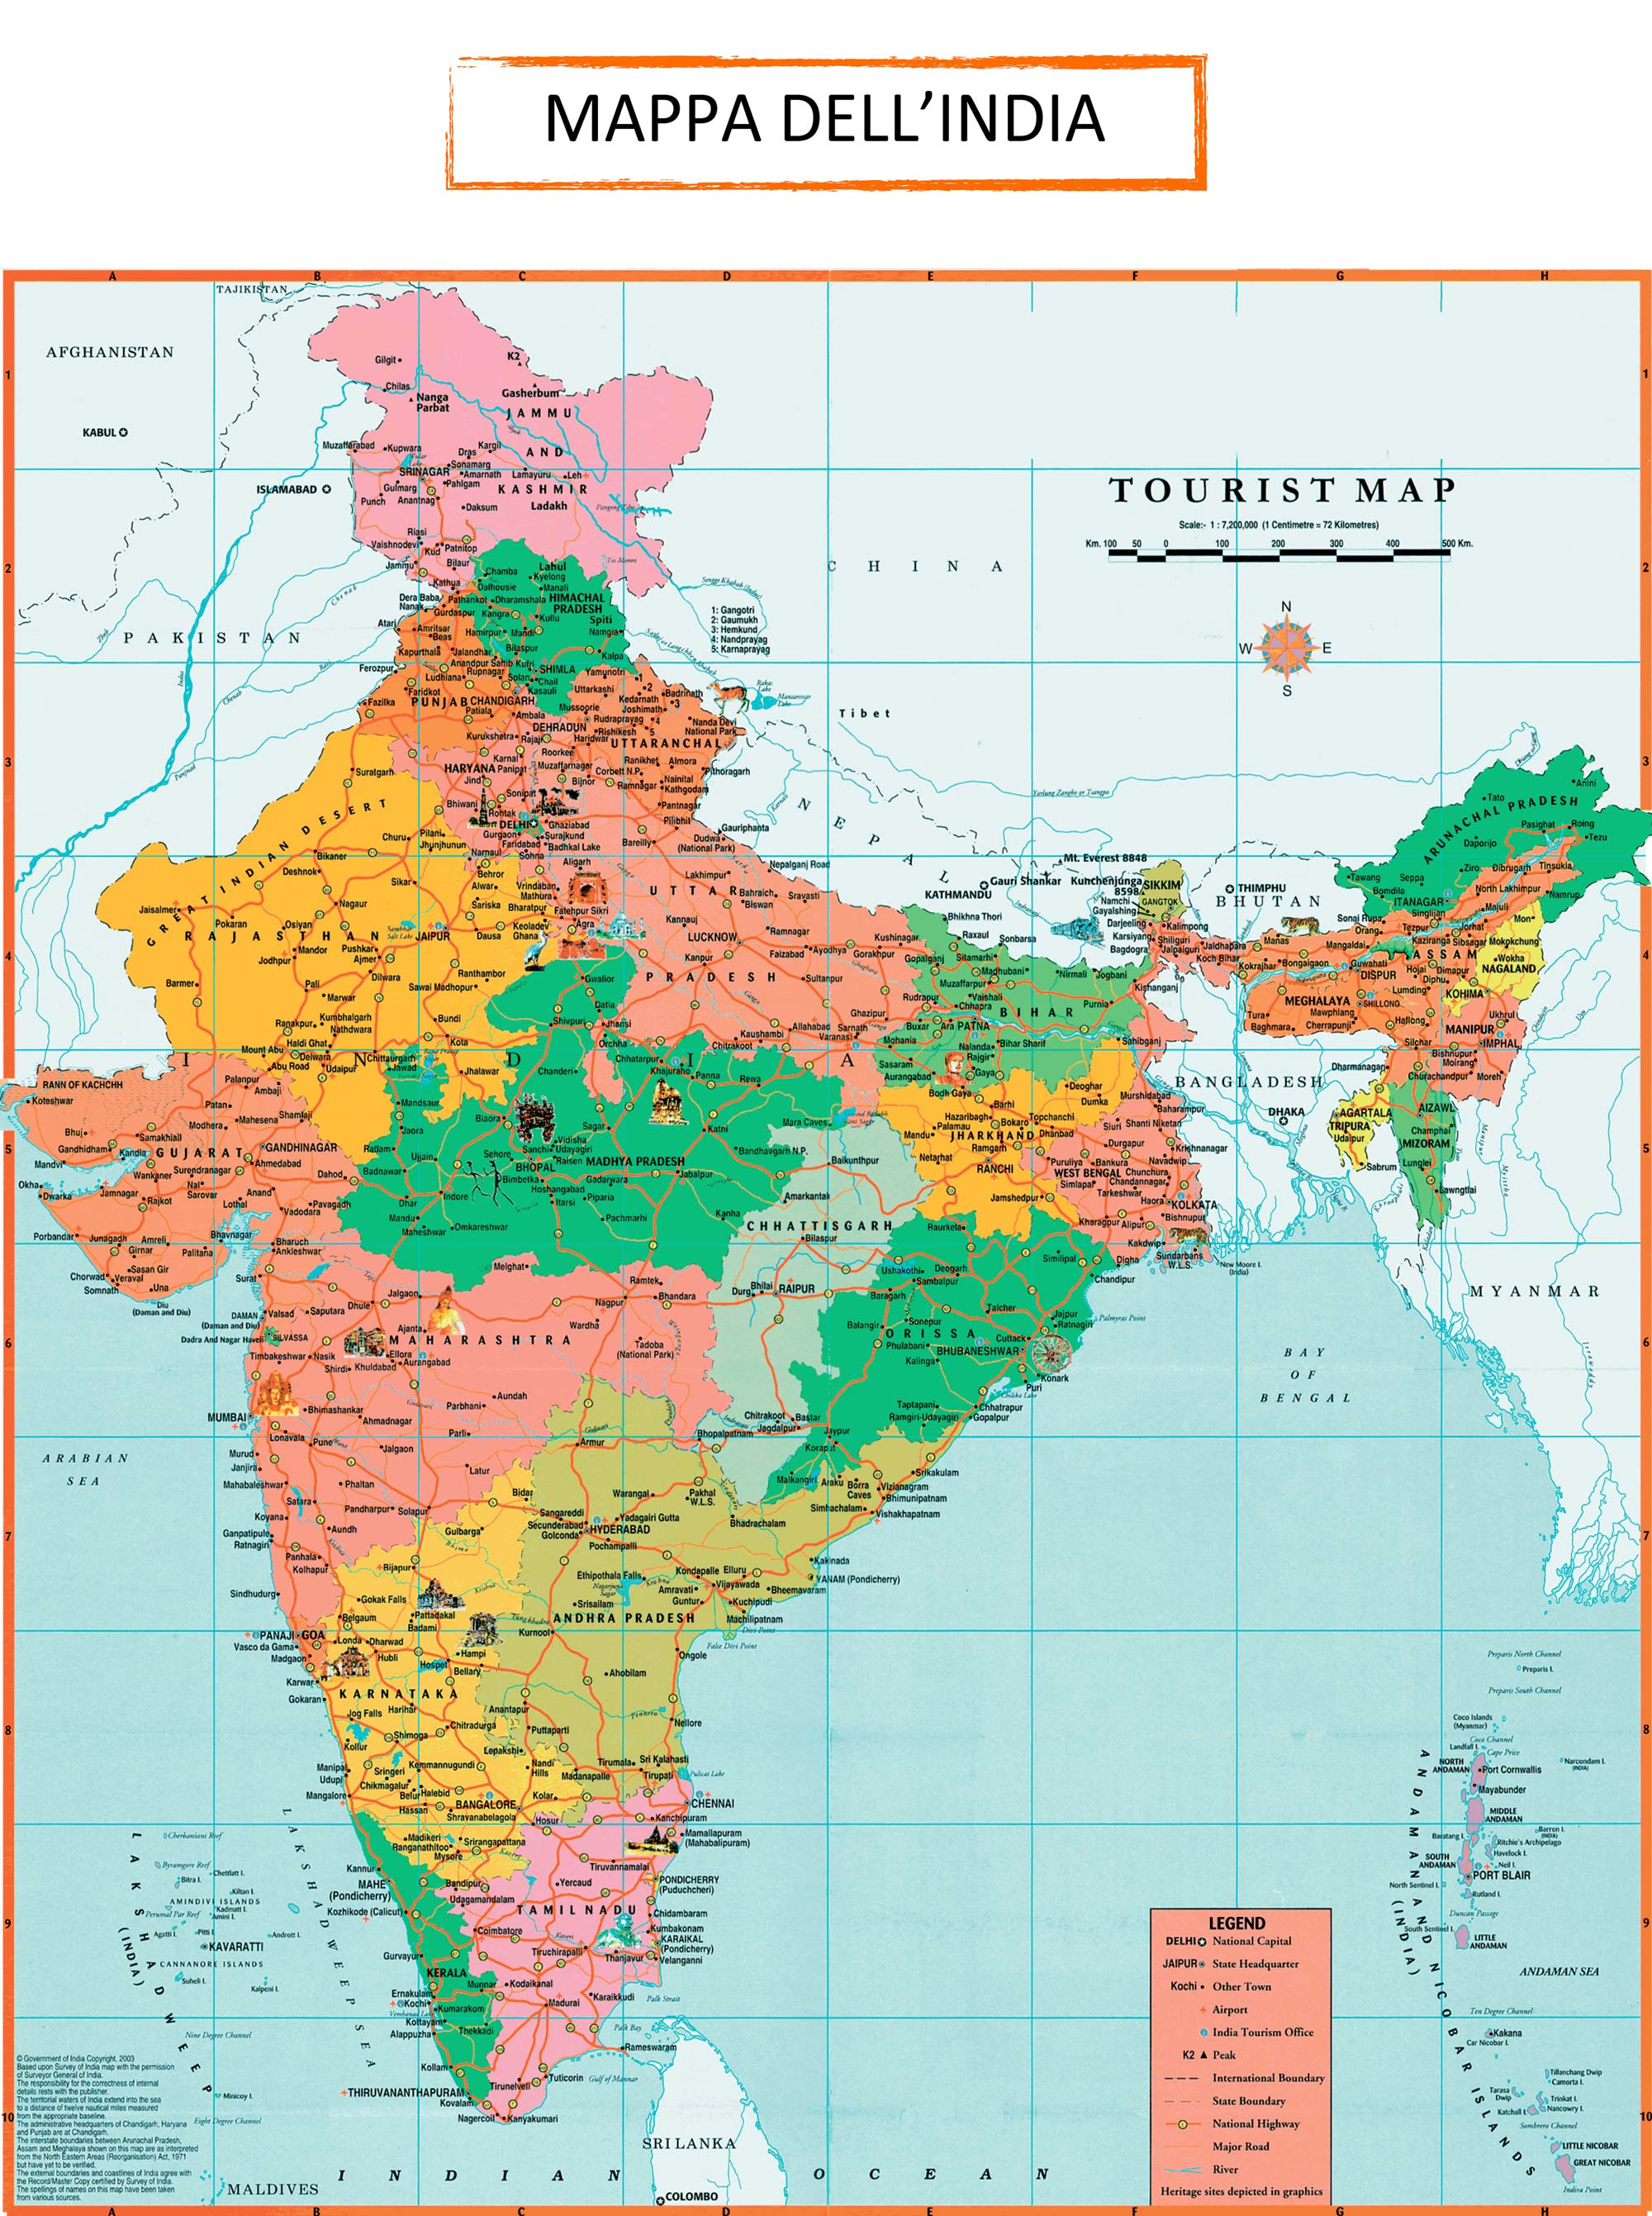 Cartina India In Italiano.India Cartina Politica Mappa Dell India Mappa India